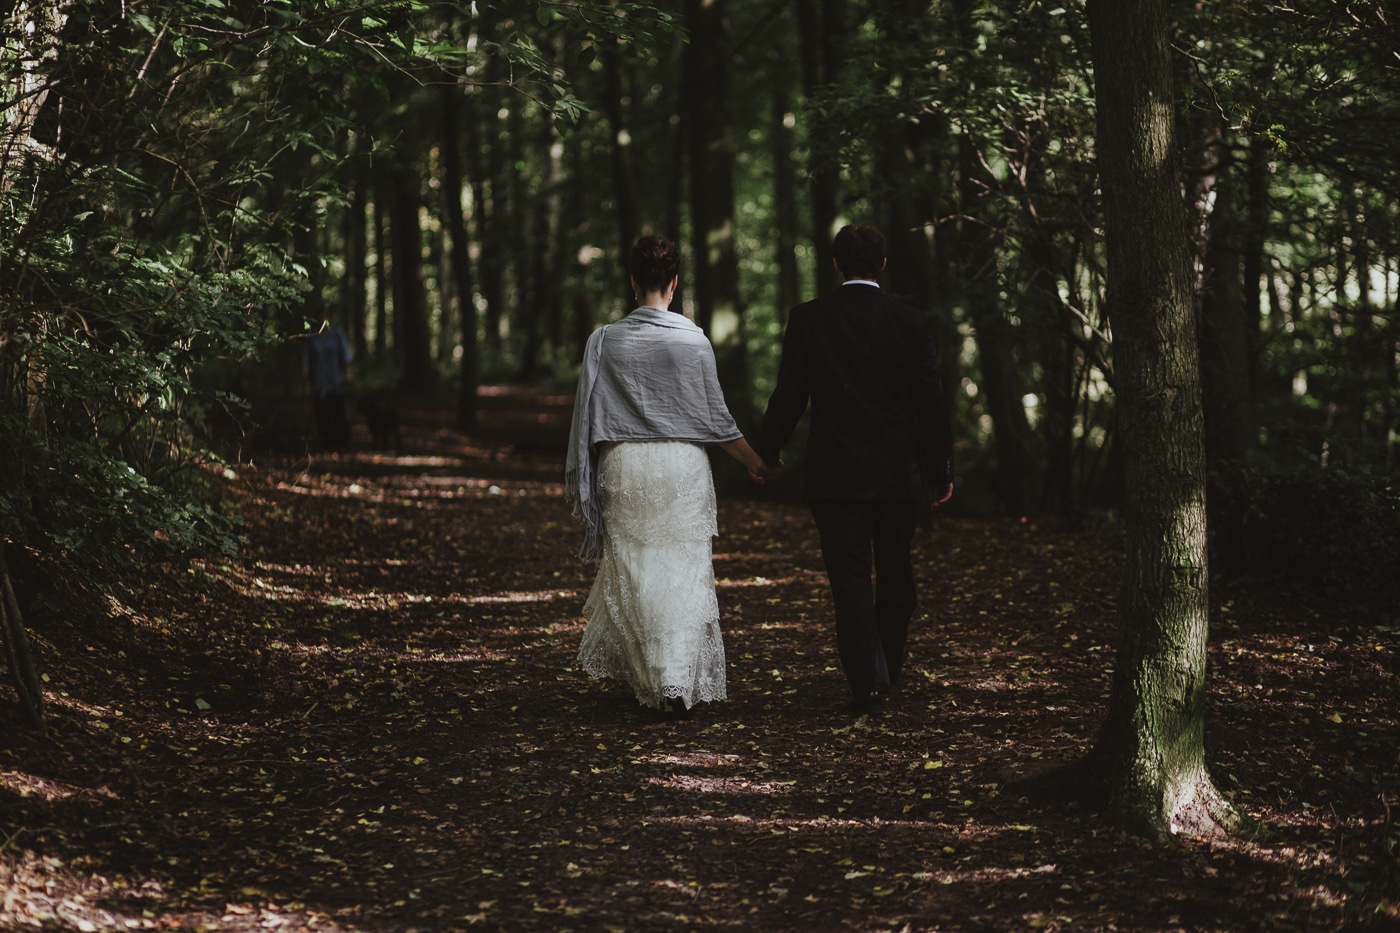 Bride in shawl walking with groom through a woodland path by Joshua Wyborn Photographic